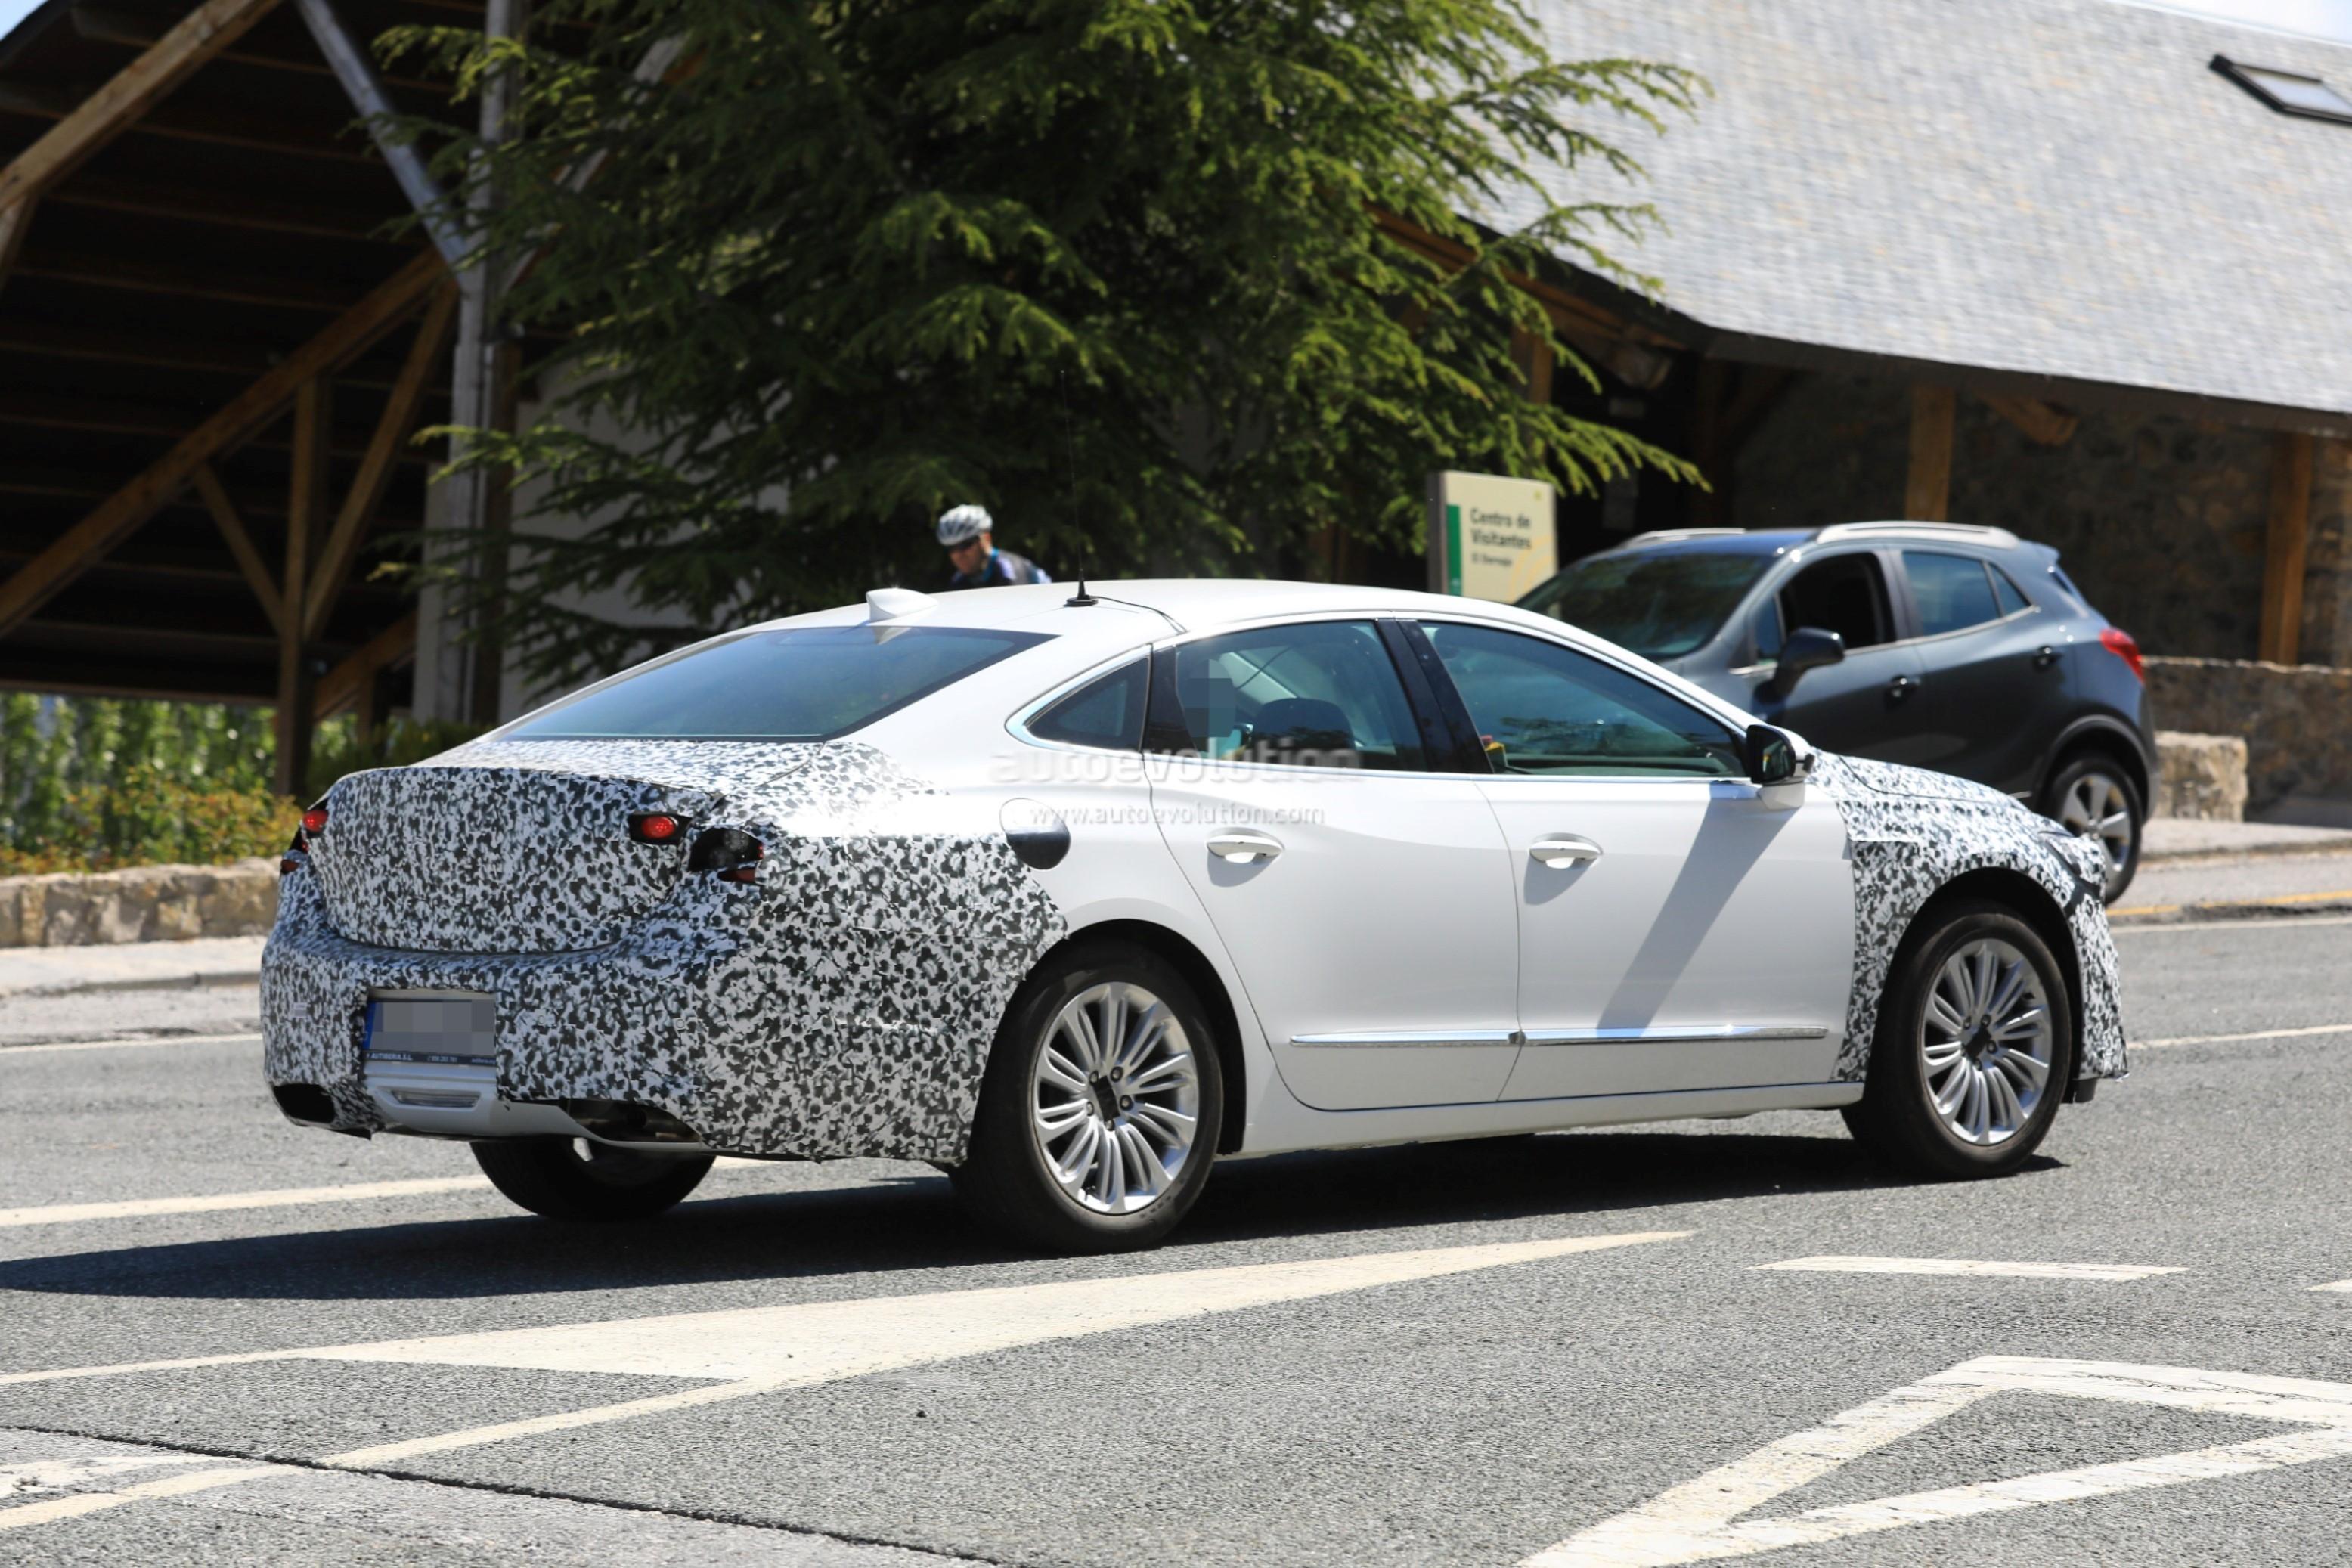 2020 Buick Lacrosse Facelift Canceled From U S Lineup Autoevolution